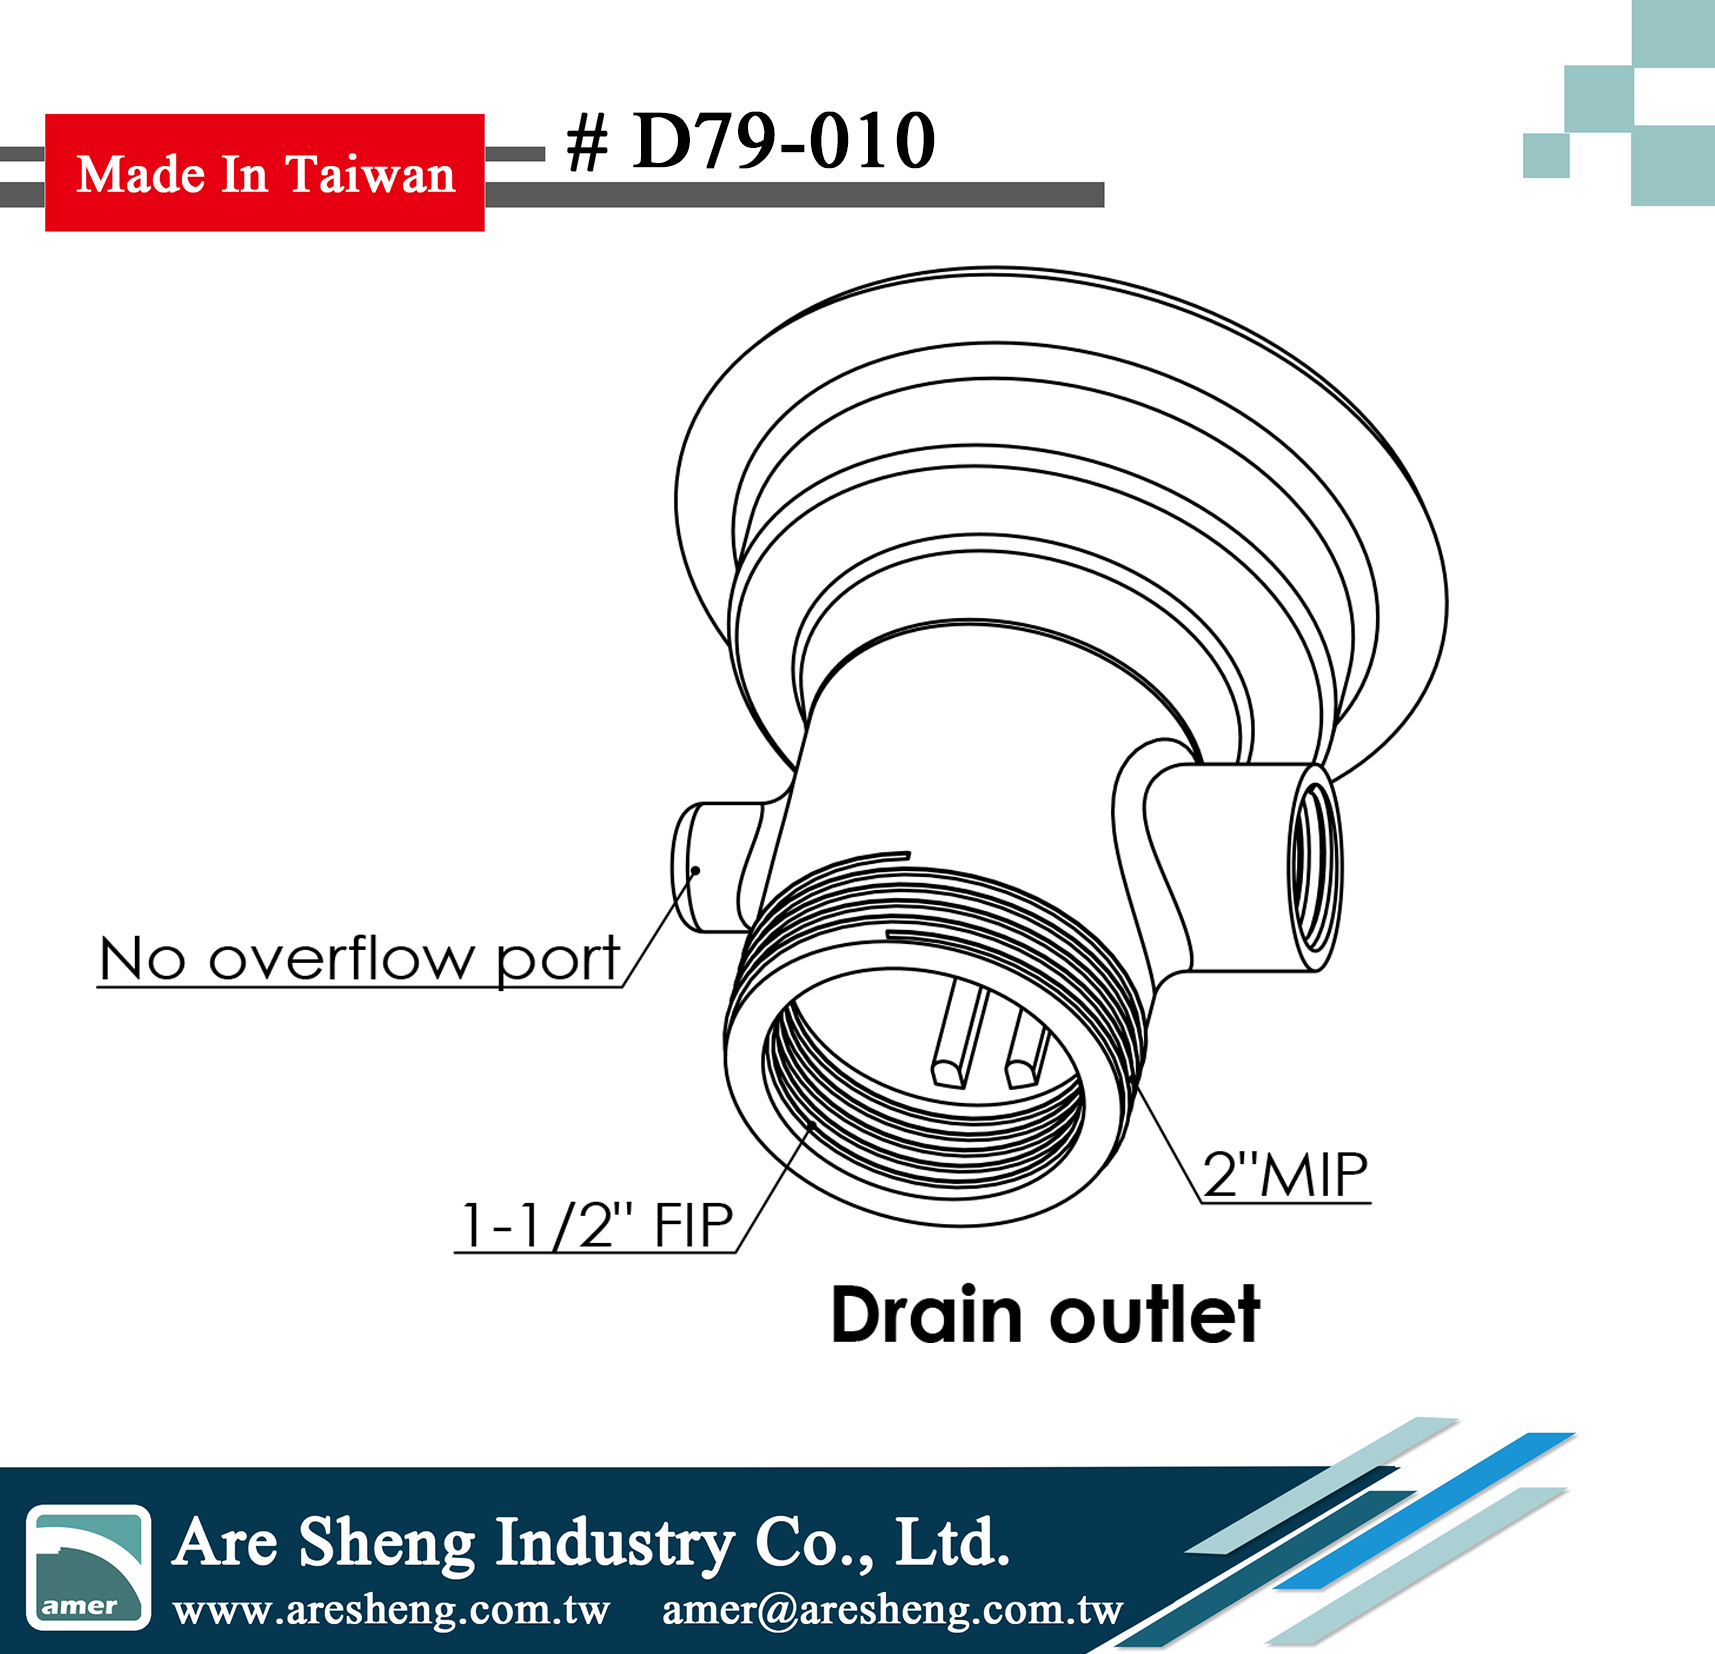 waste valve lever handle drain body drawing no overflow